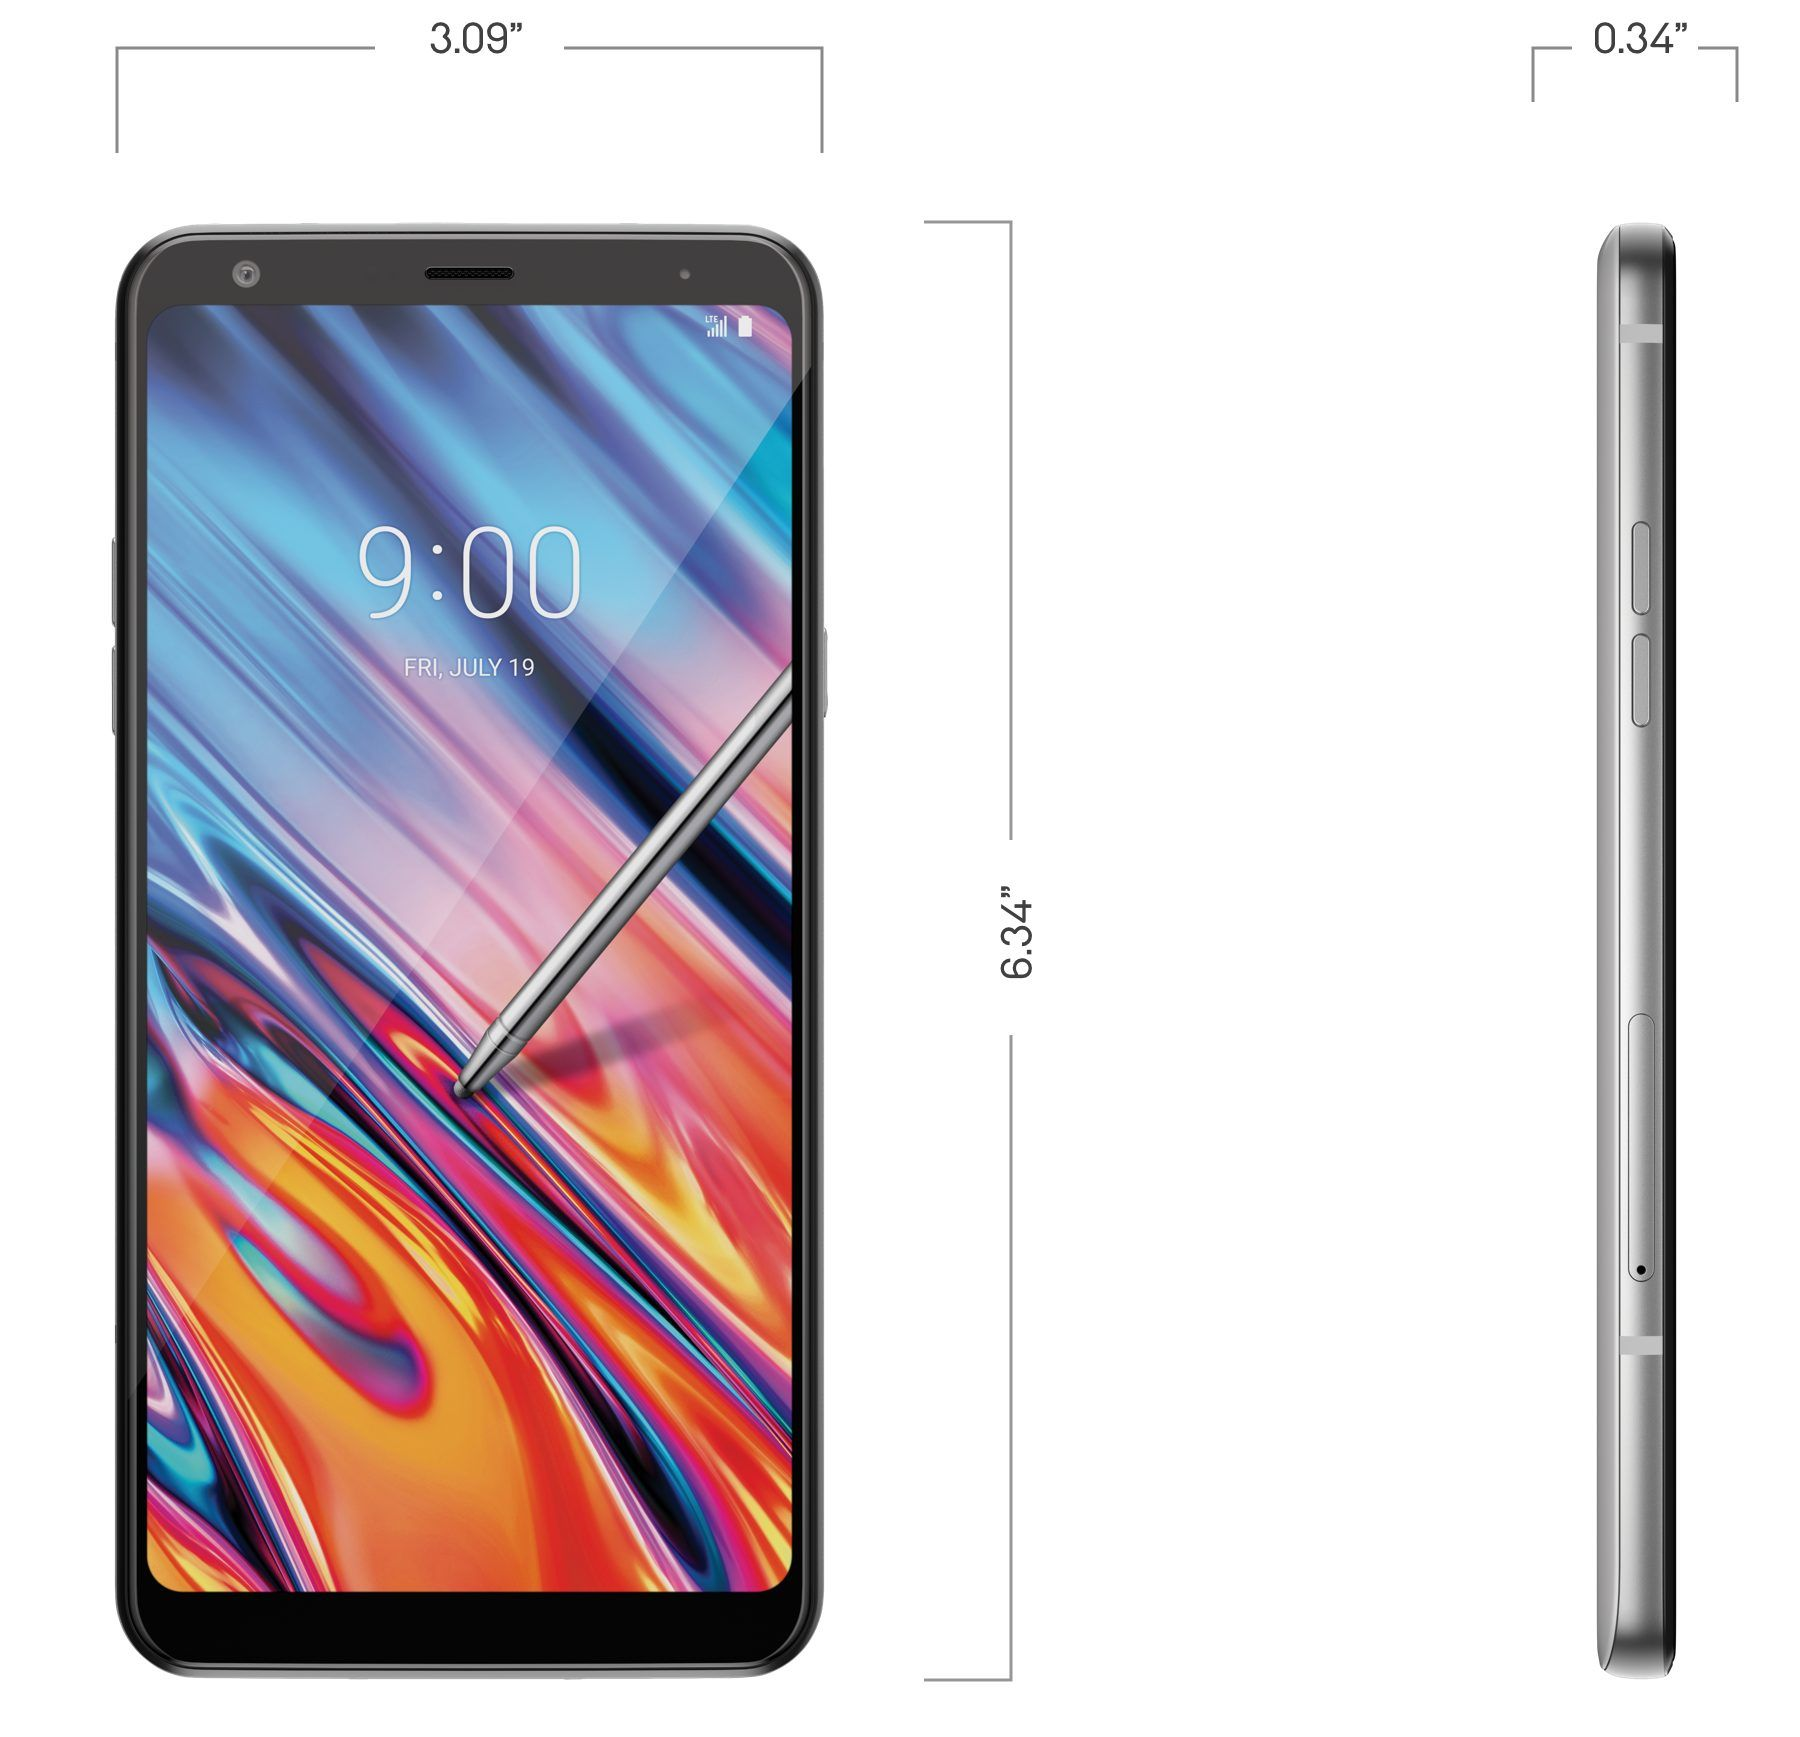 Lg Stylo 5x Features Specs And Reviews Boost Mobile Cell Phone Contract Boost Mobile Contract Phones